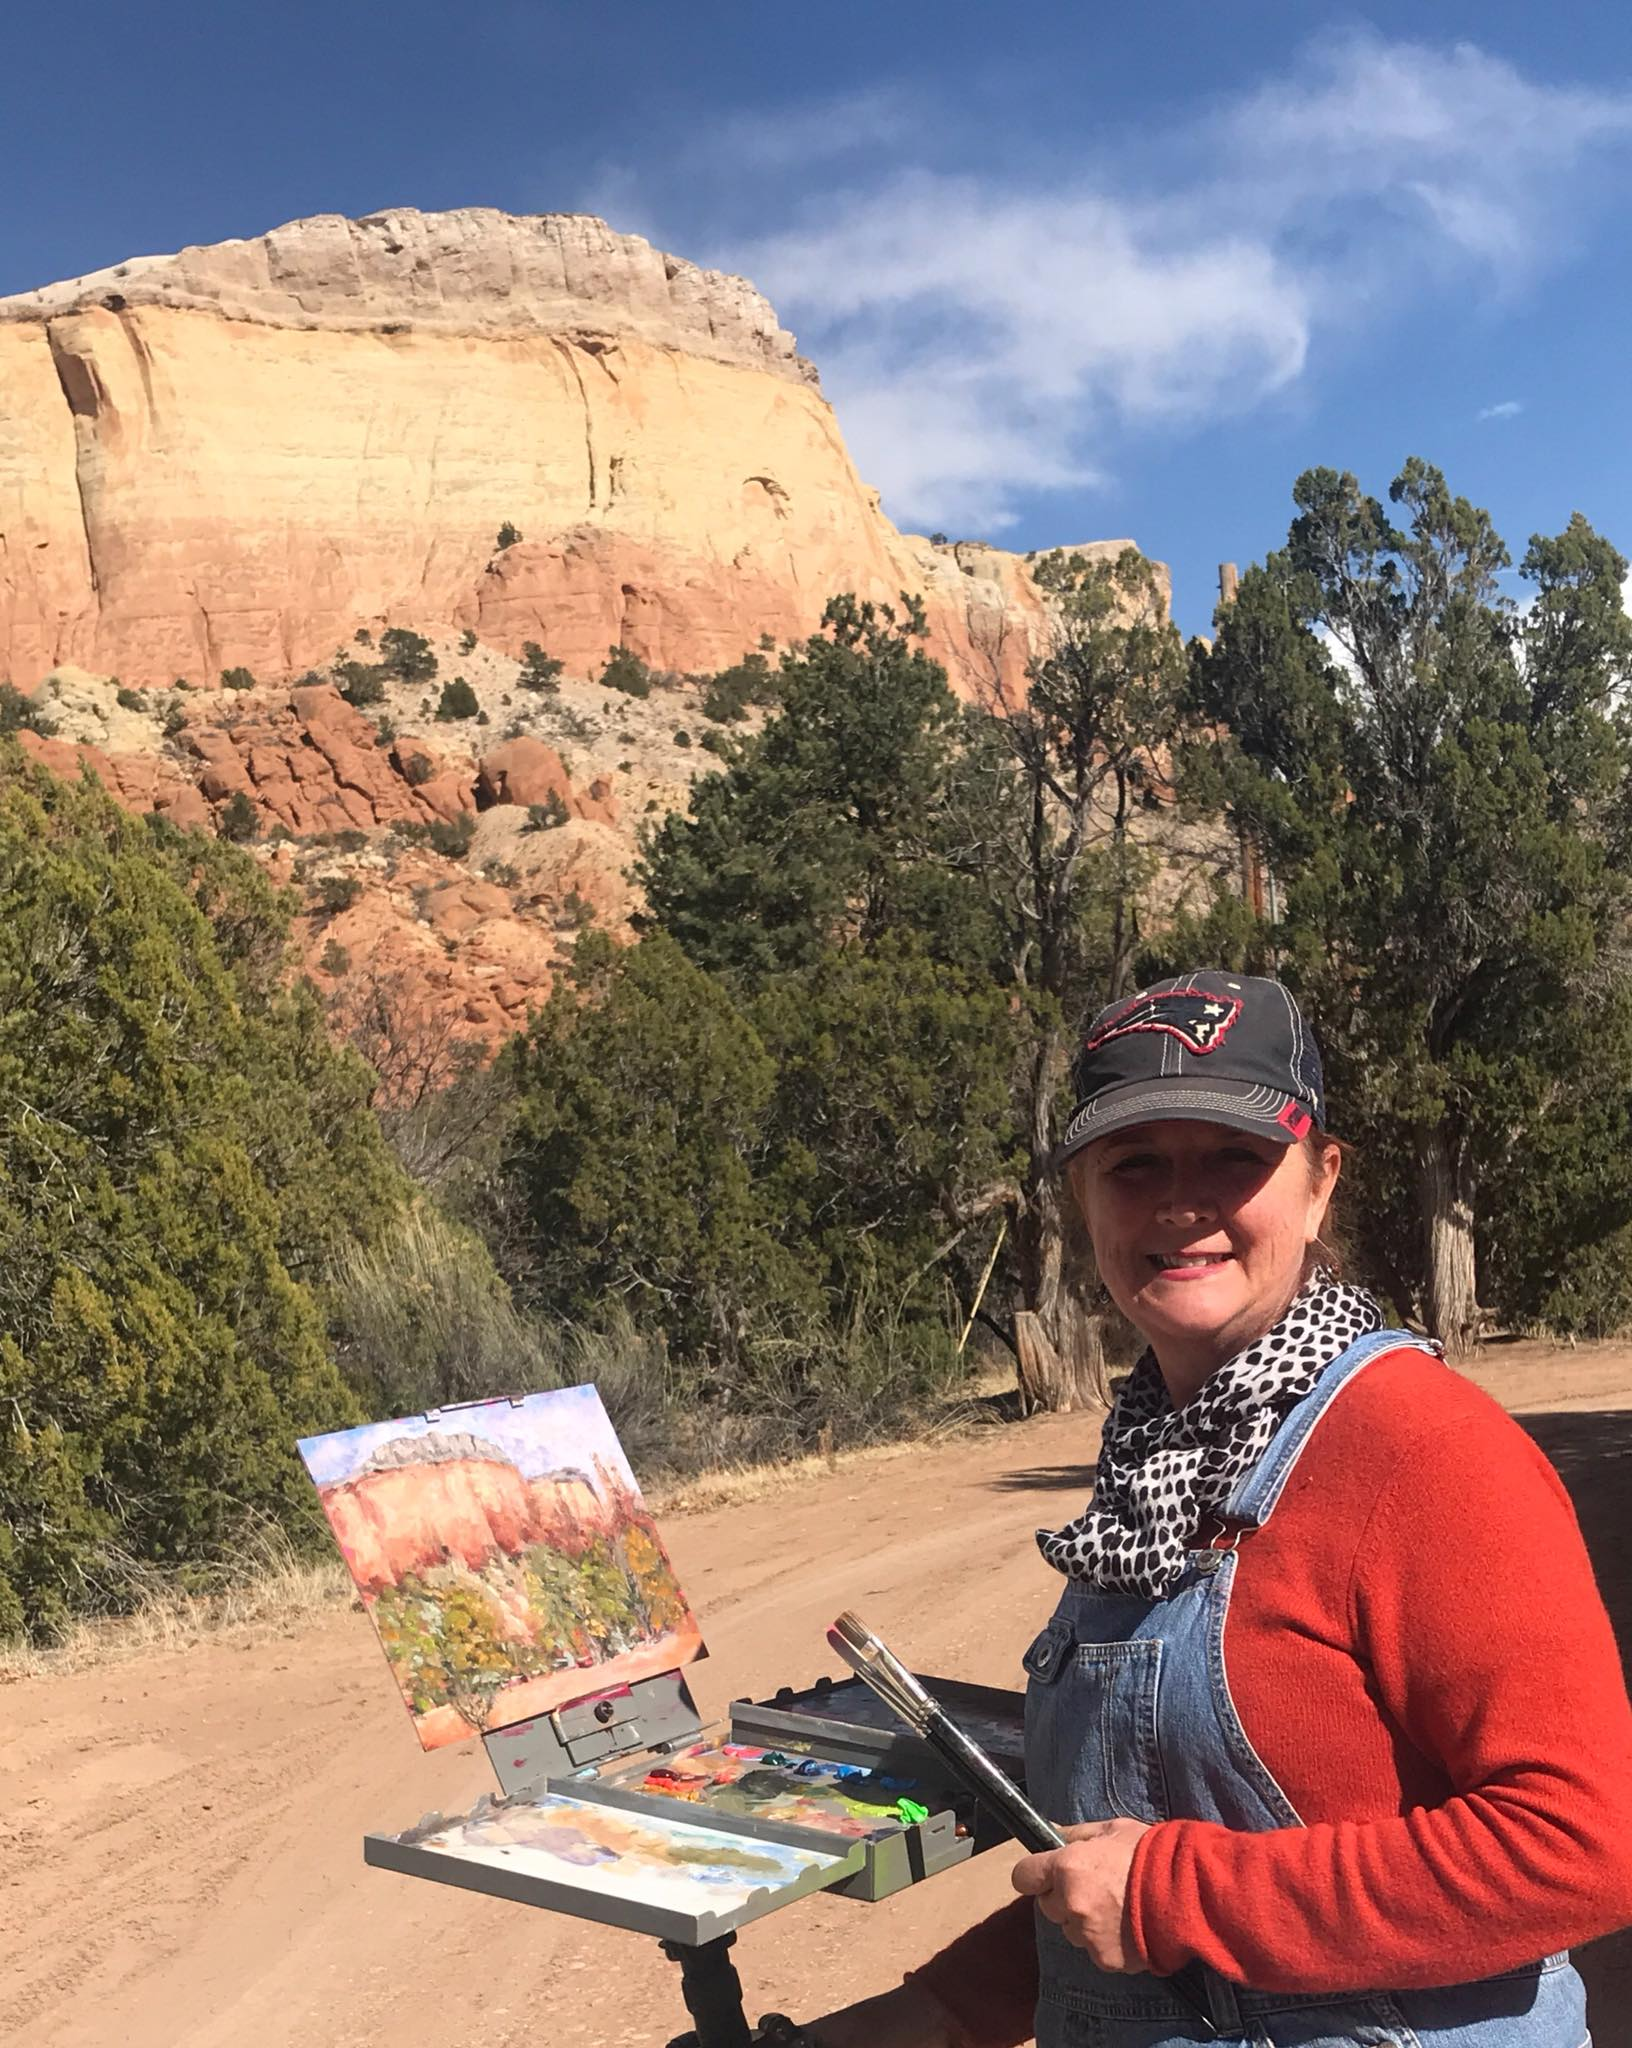 Plein Air painting at Ghost Ranch